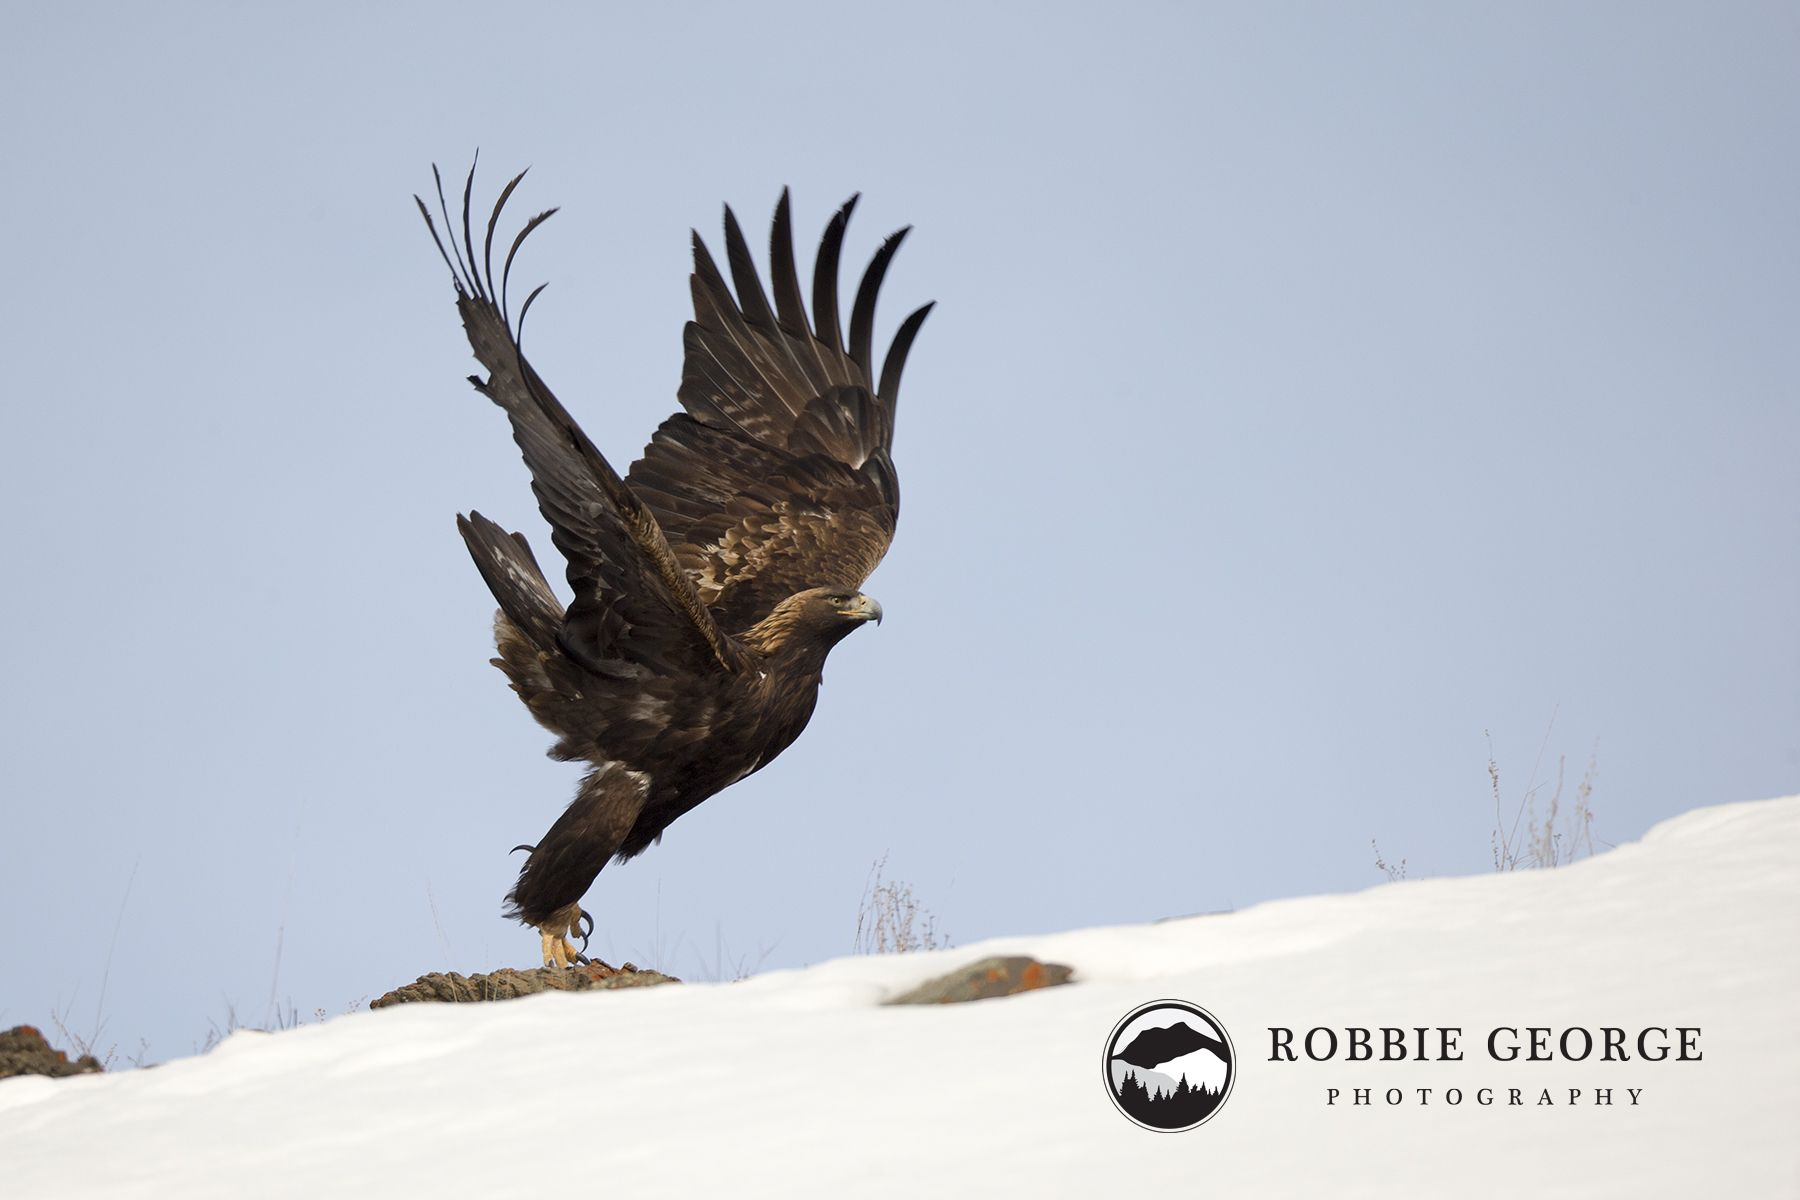 A golden eagle takes off from its perch.